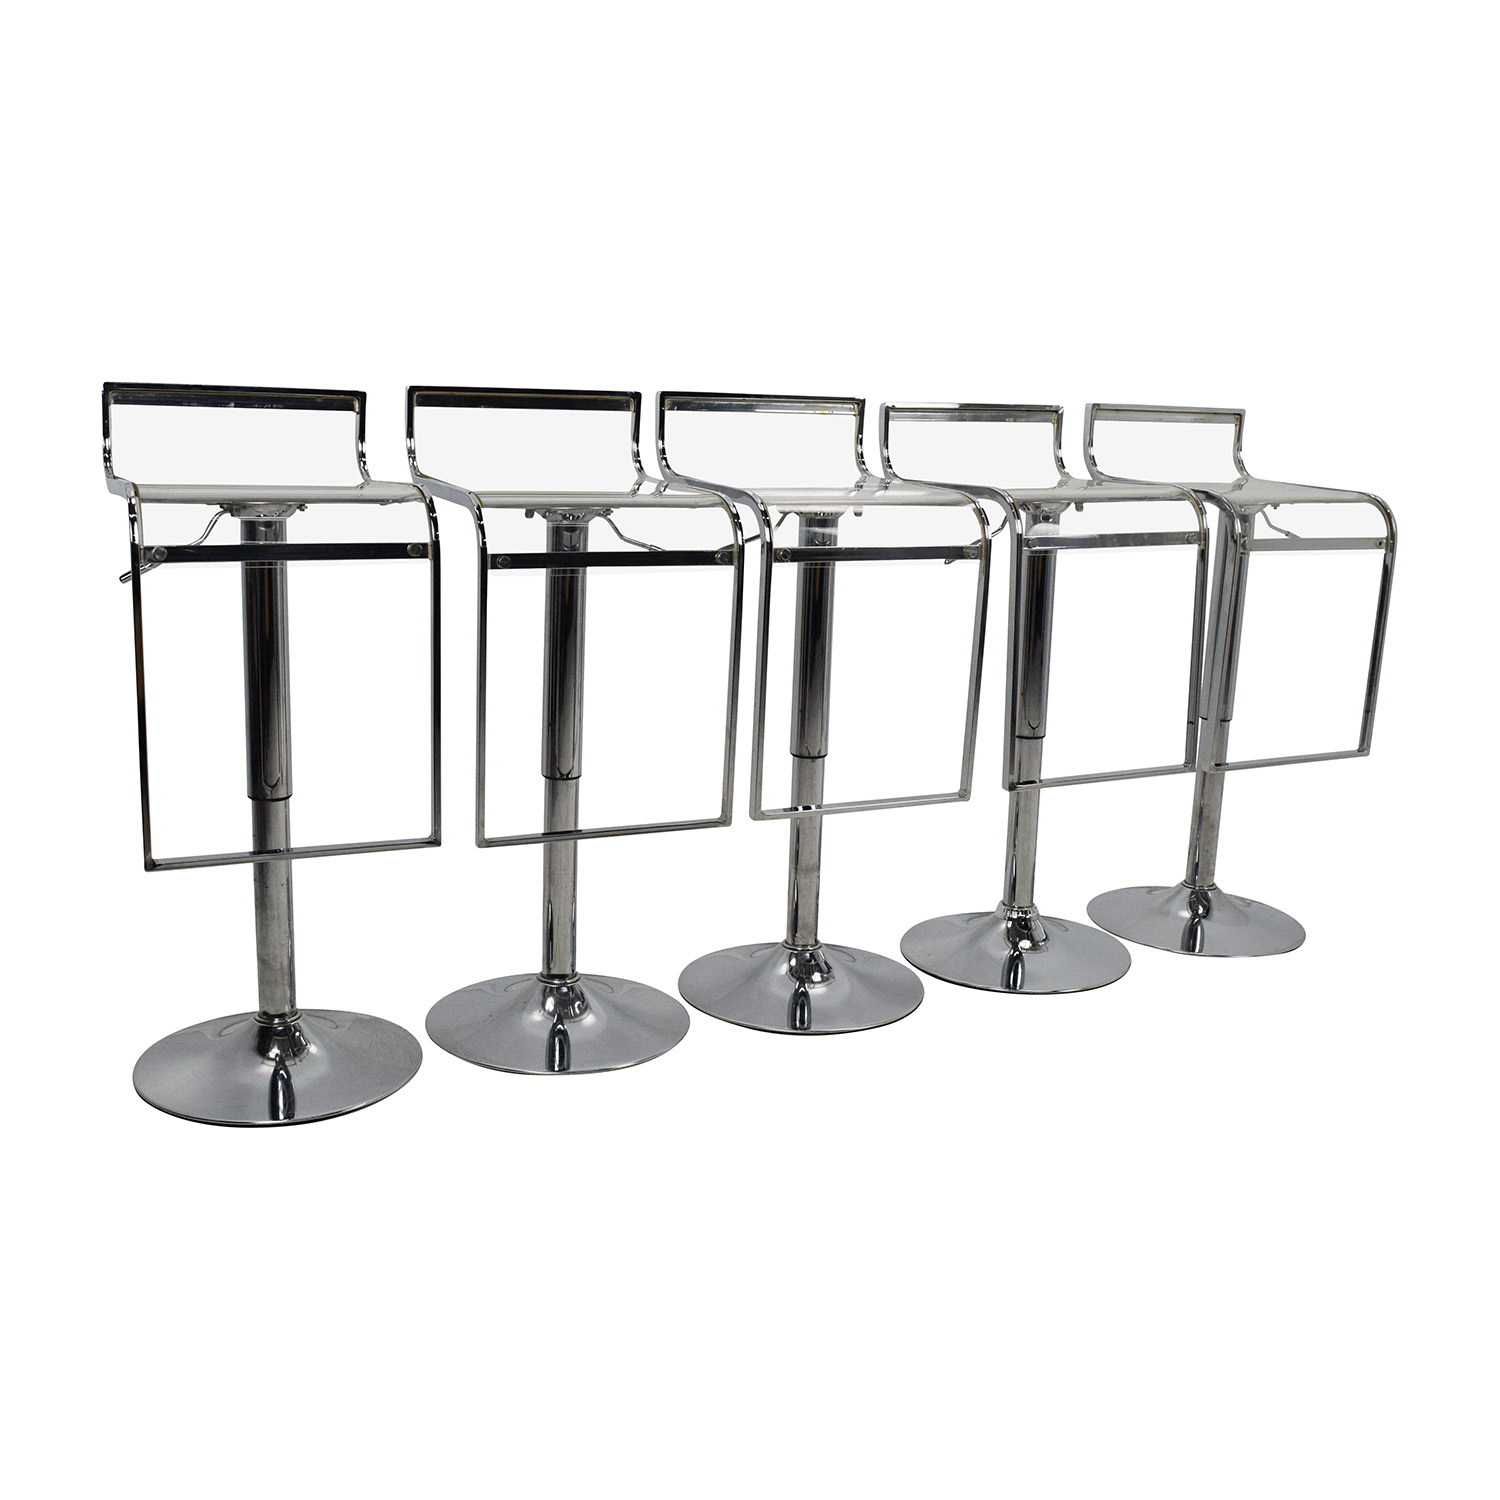 86 off amazon transparent bar stool set chairs - Amazon bedroom chairs and stools ...